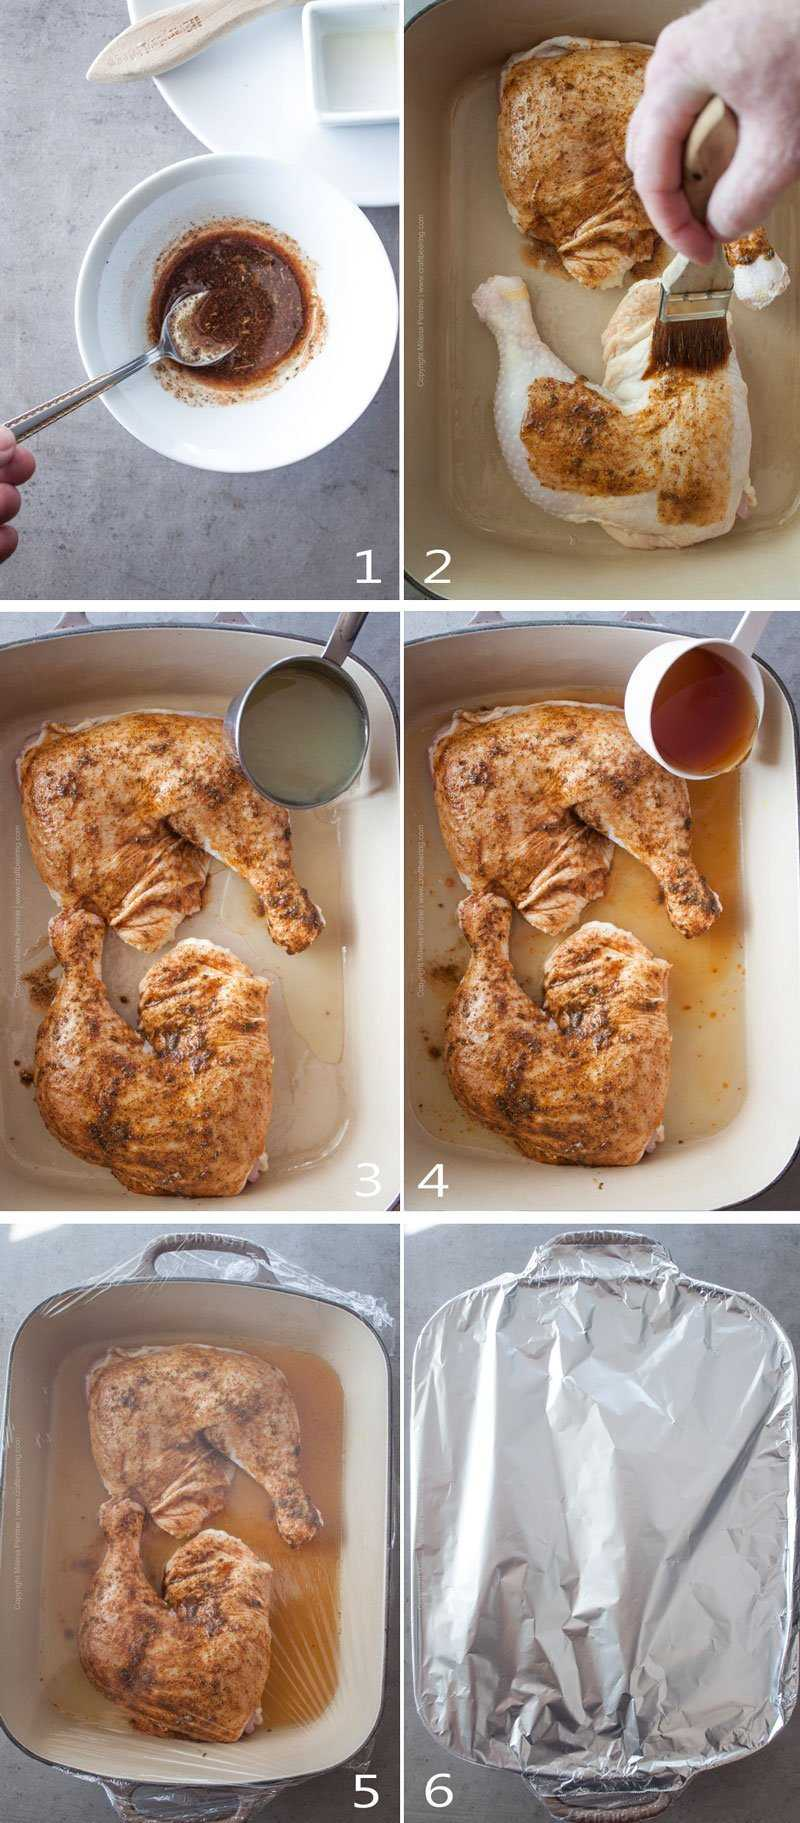 Image grid with steps on how to bake chicken legs and thighs